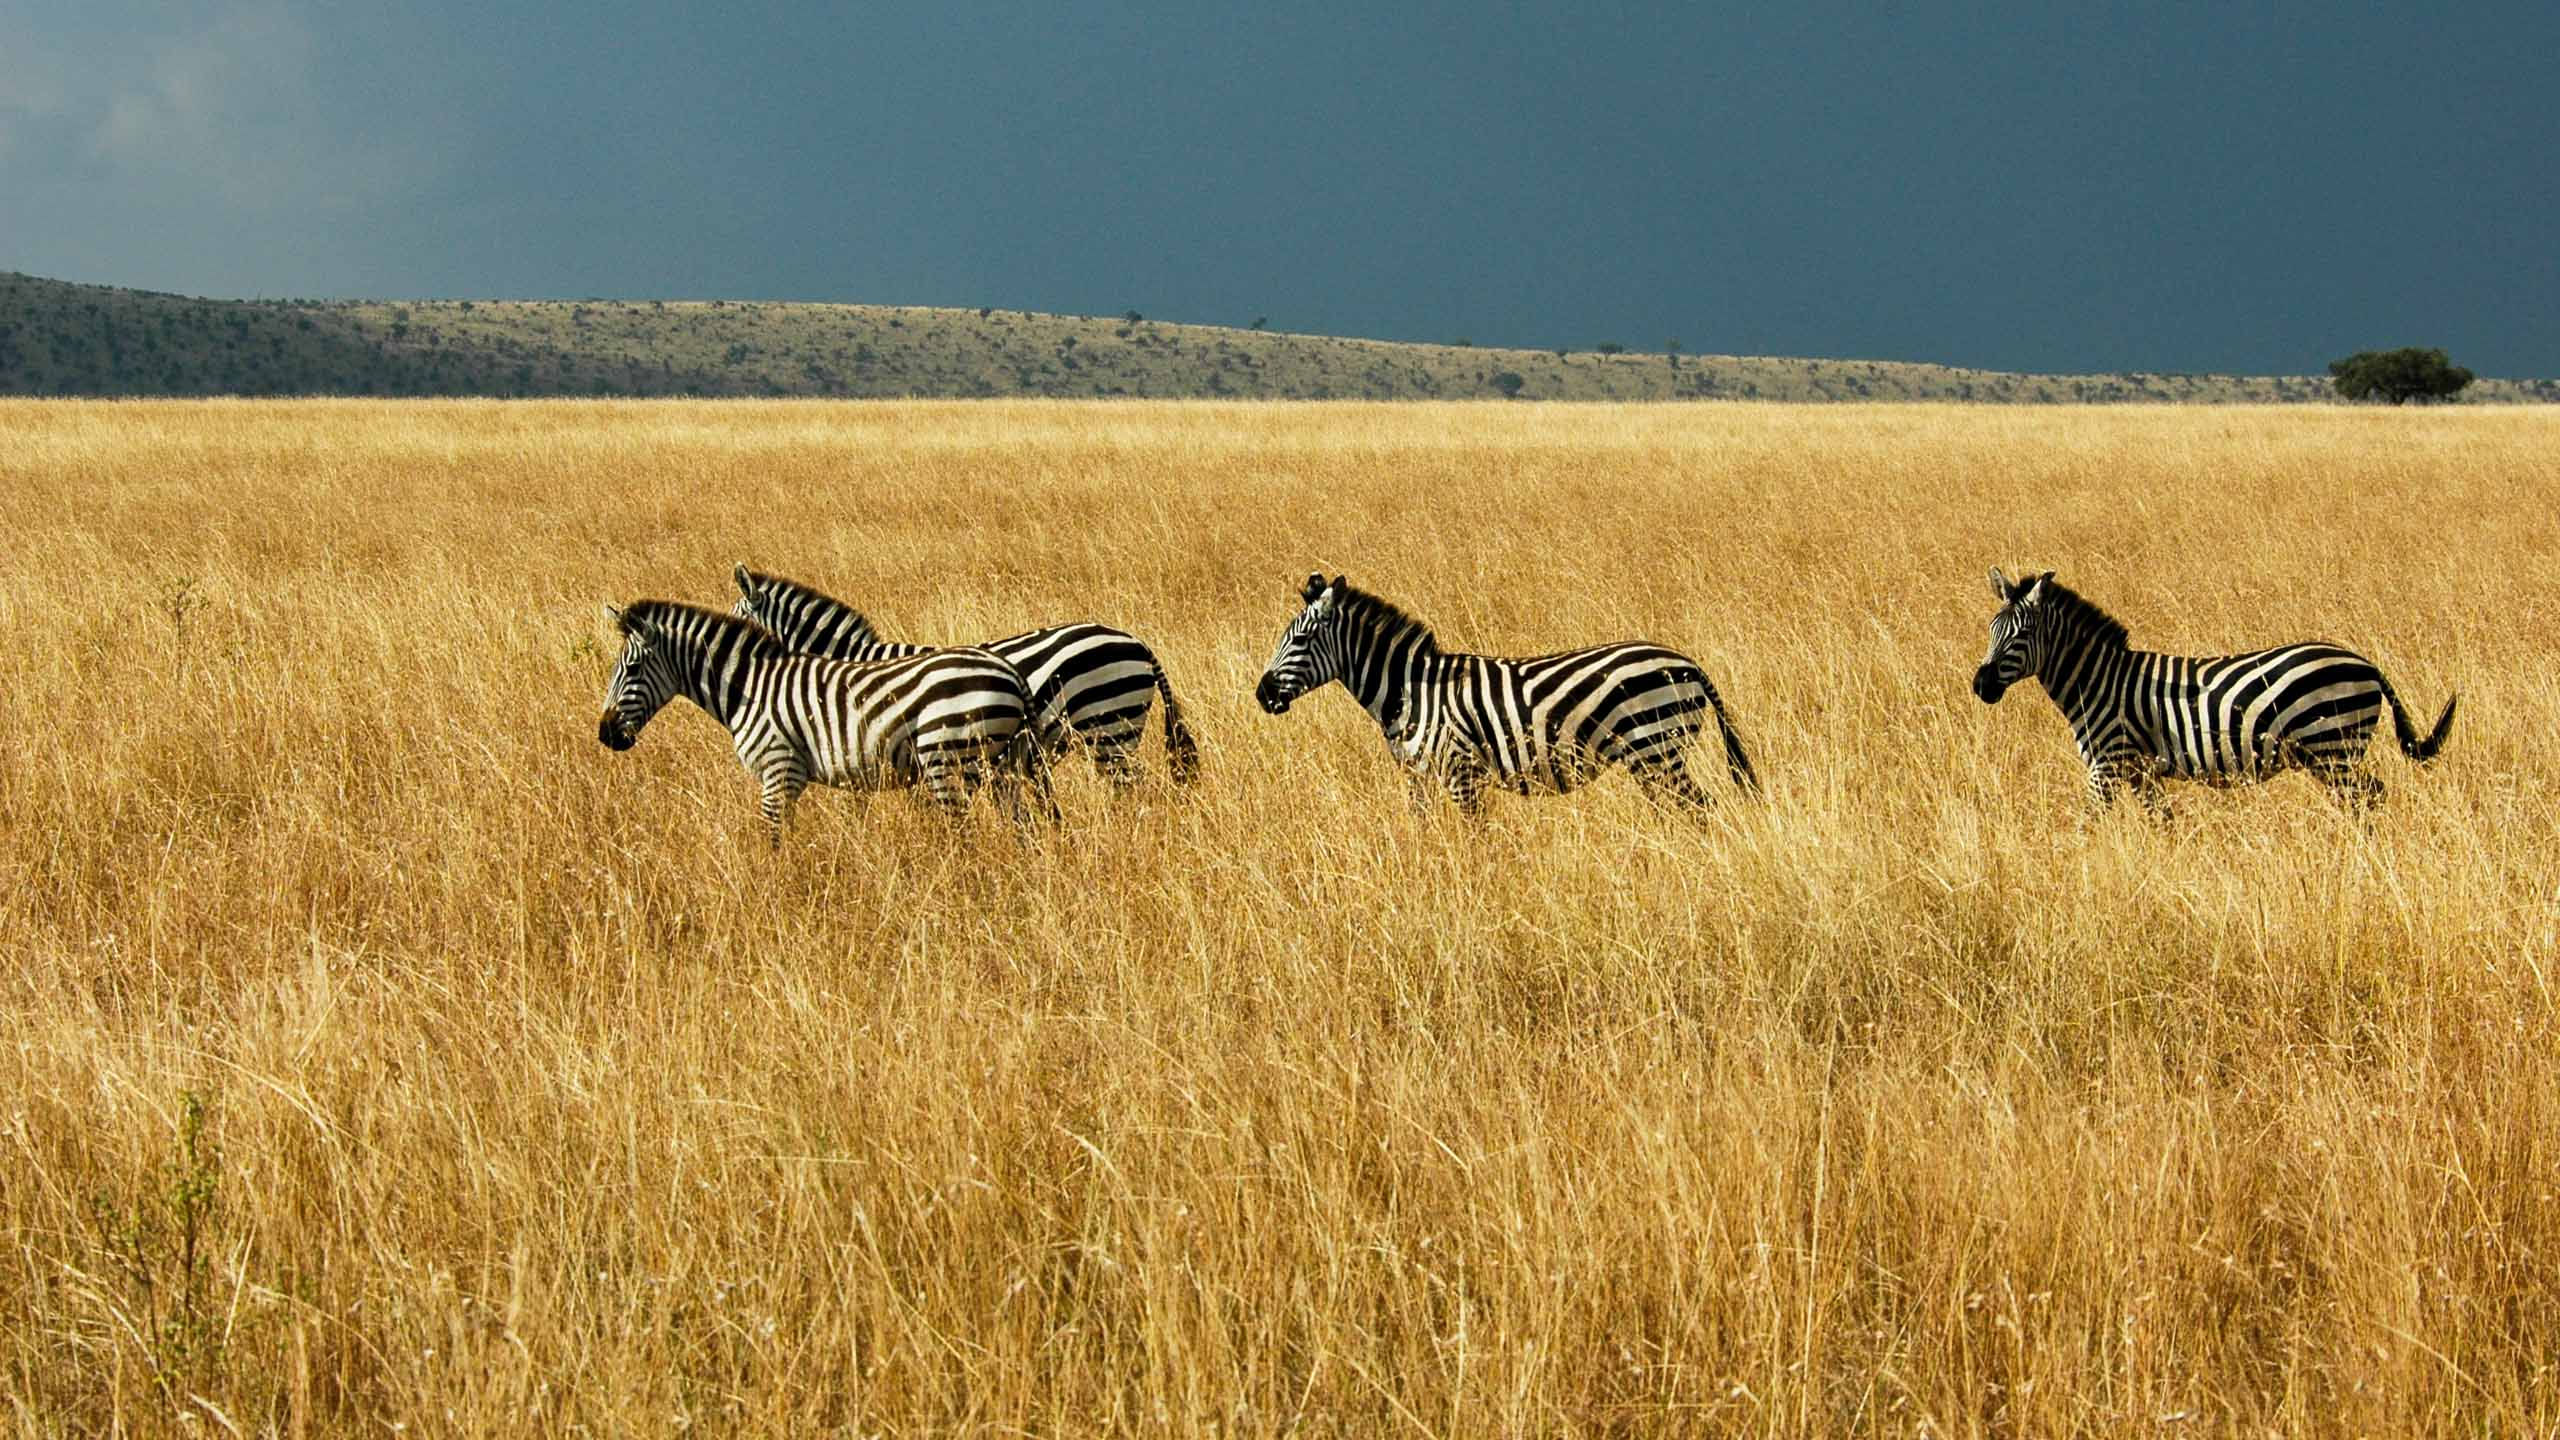 Zebra herd on Kenya fields